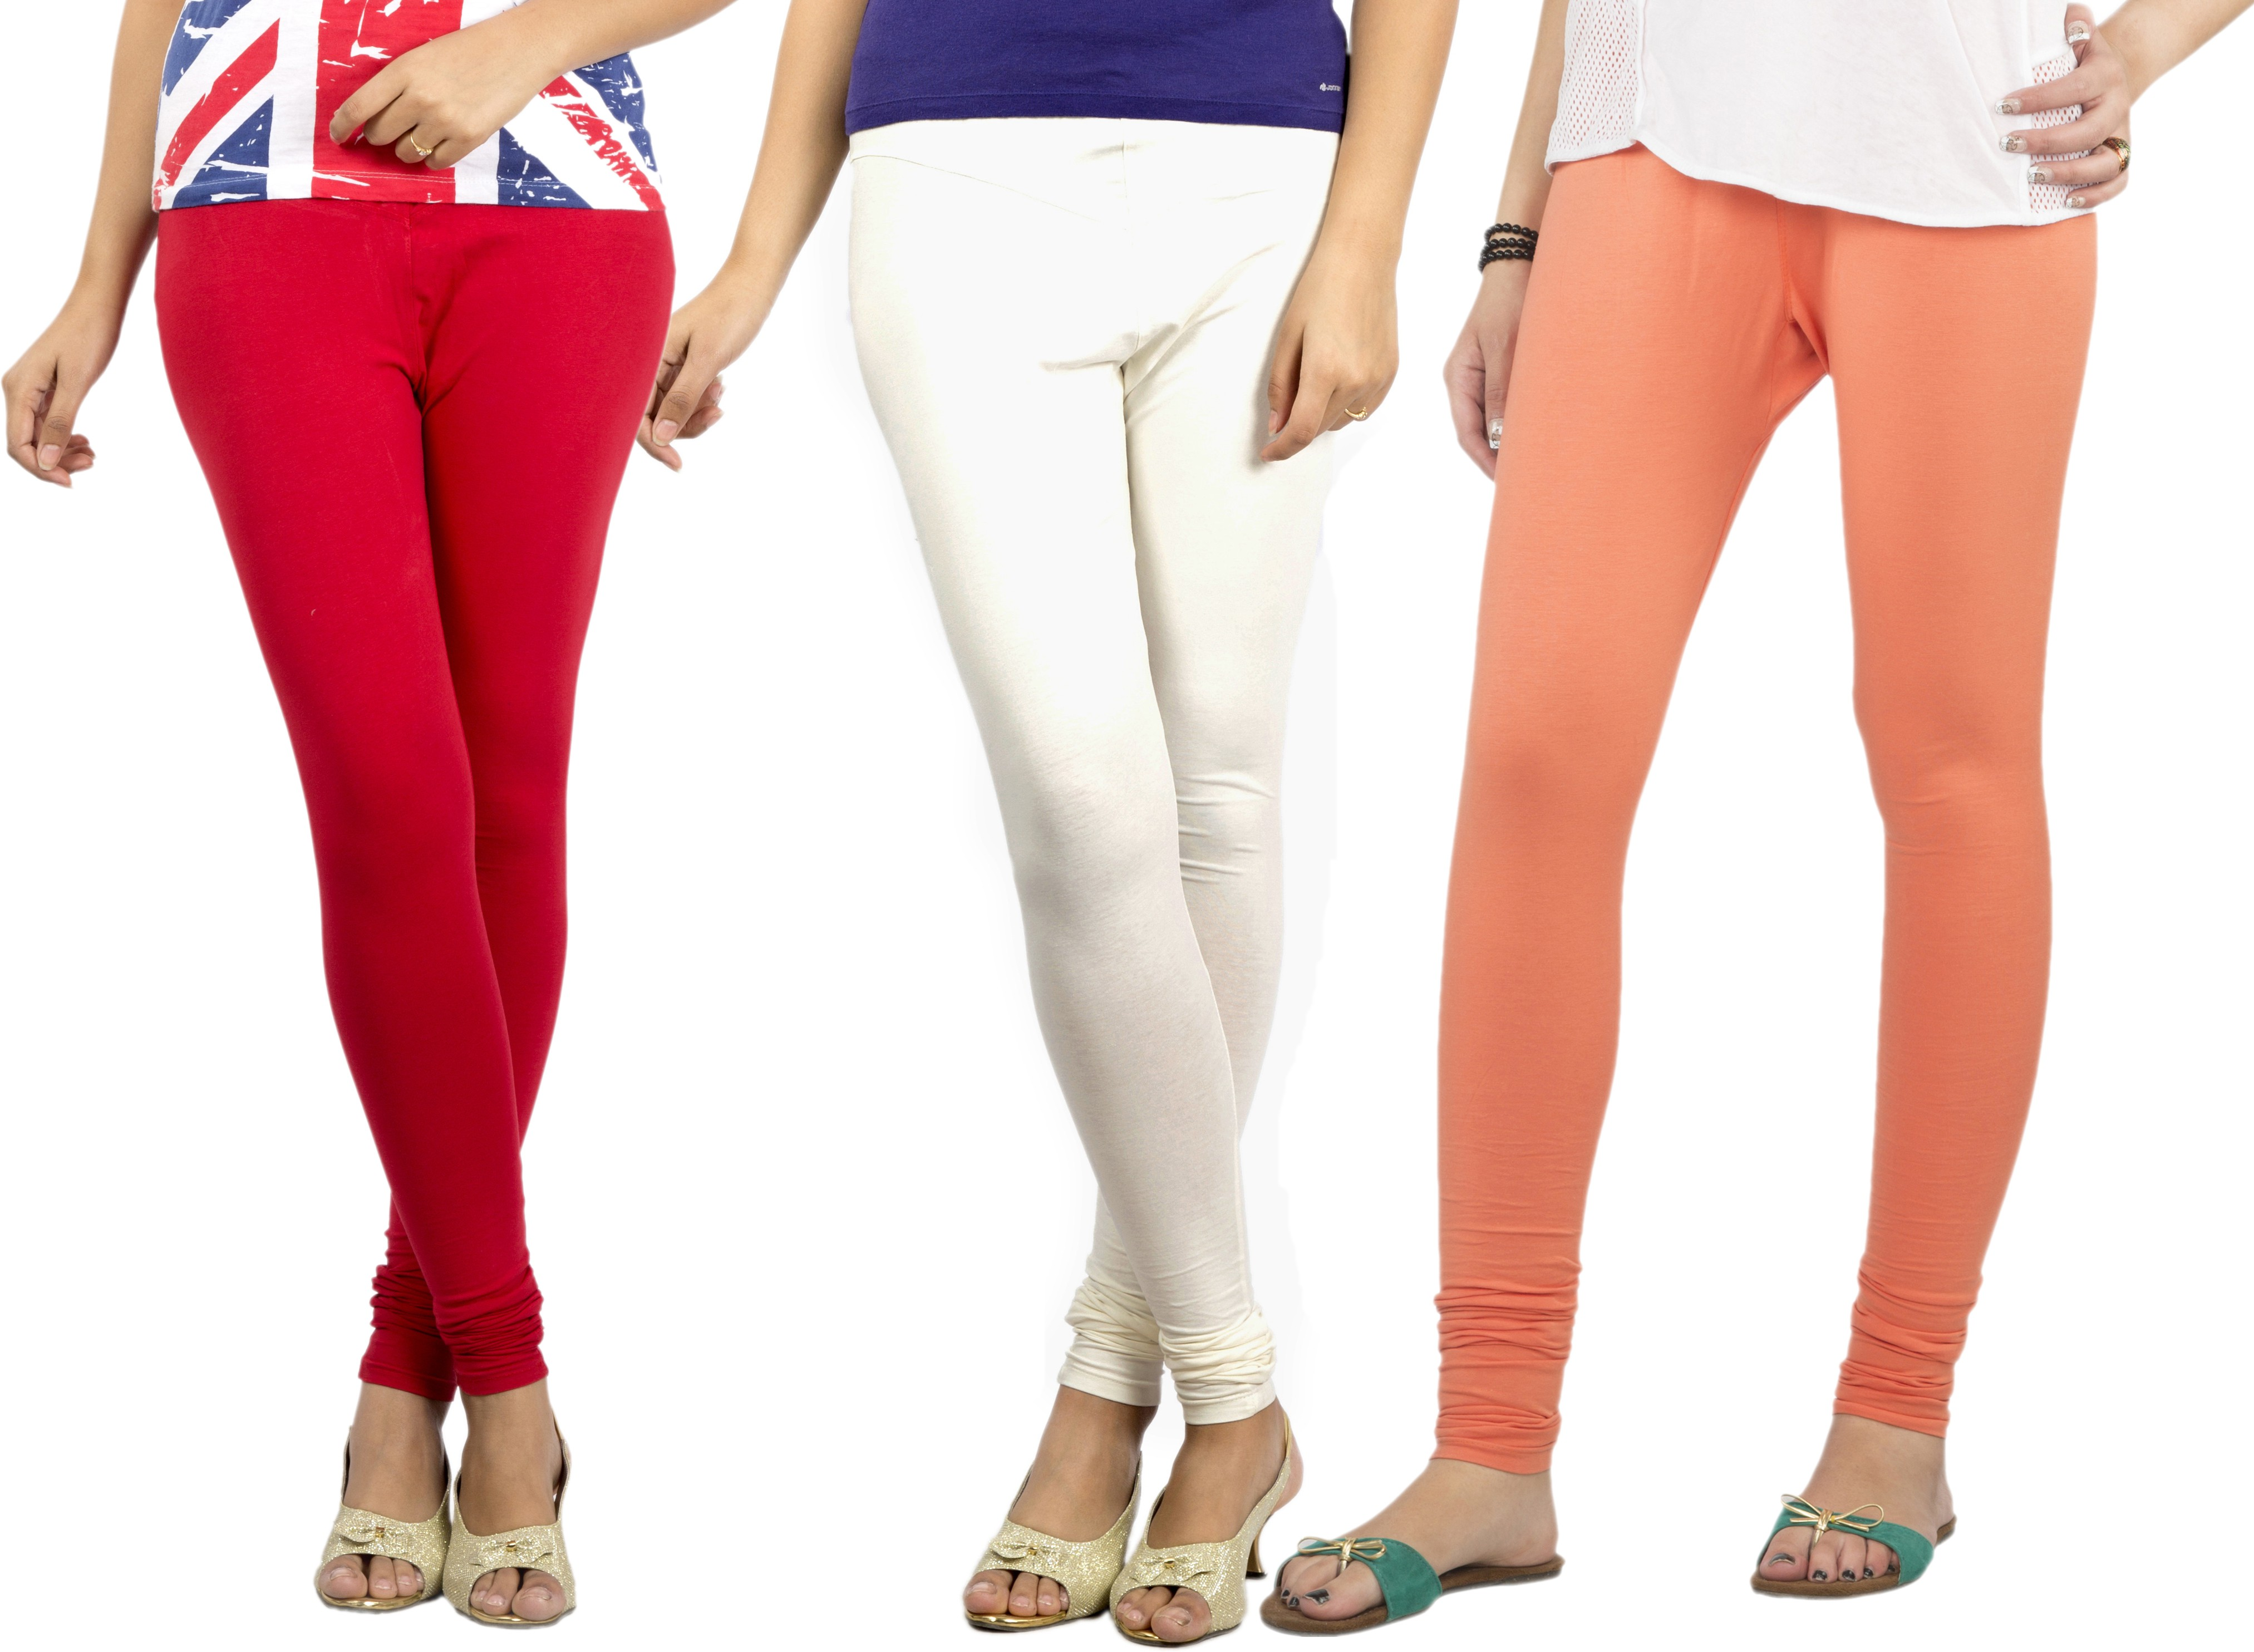 Jublee Womens White, Red, Orange Leggings(Pack of 3)